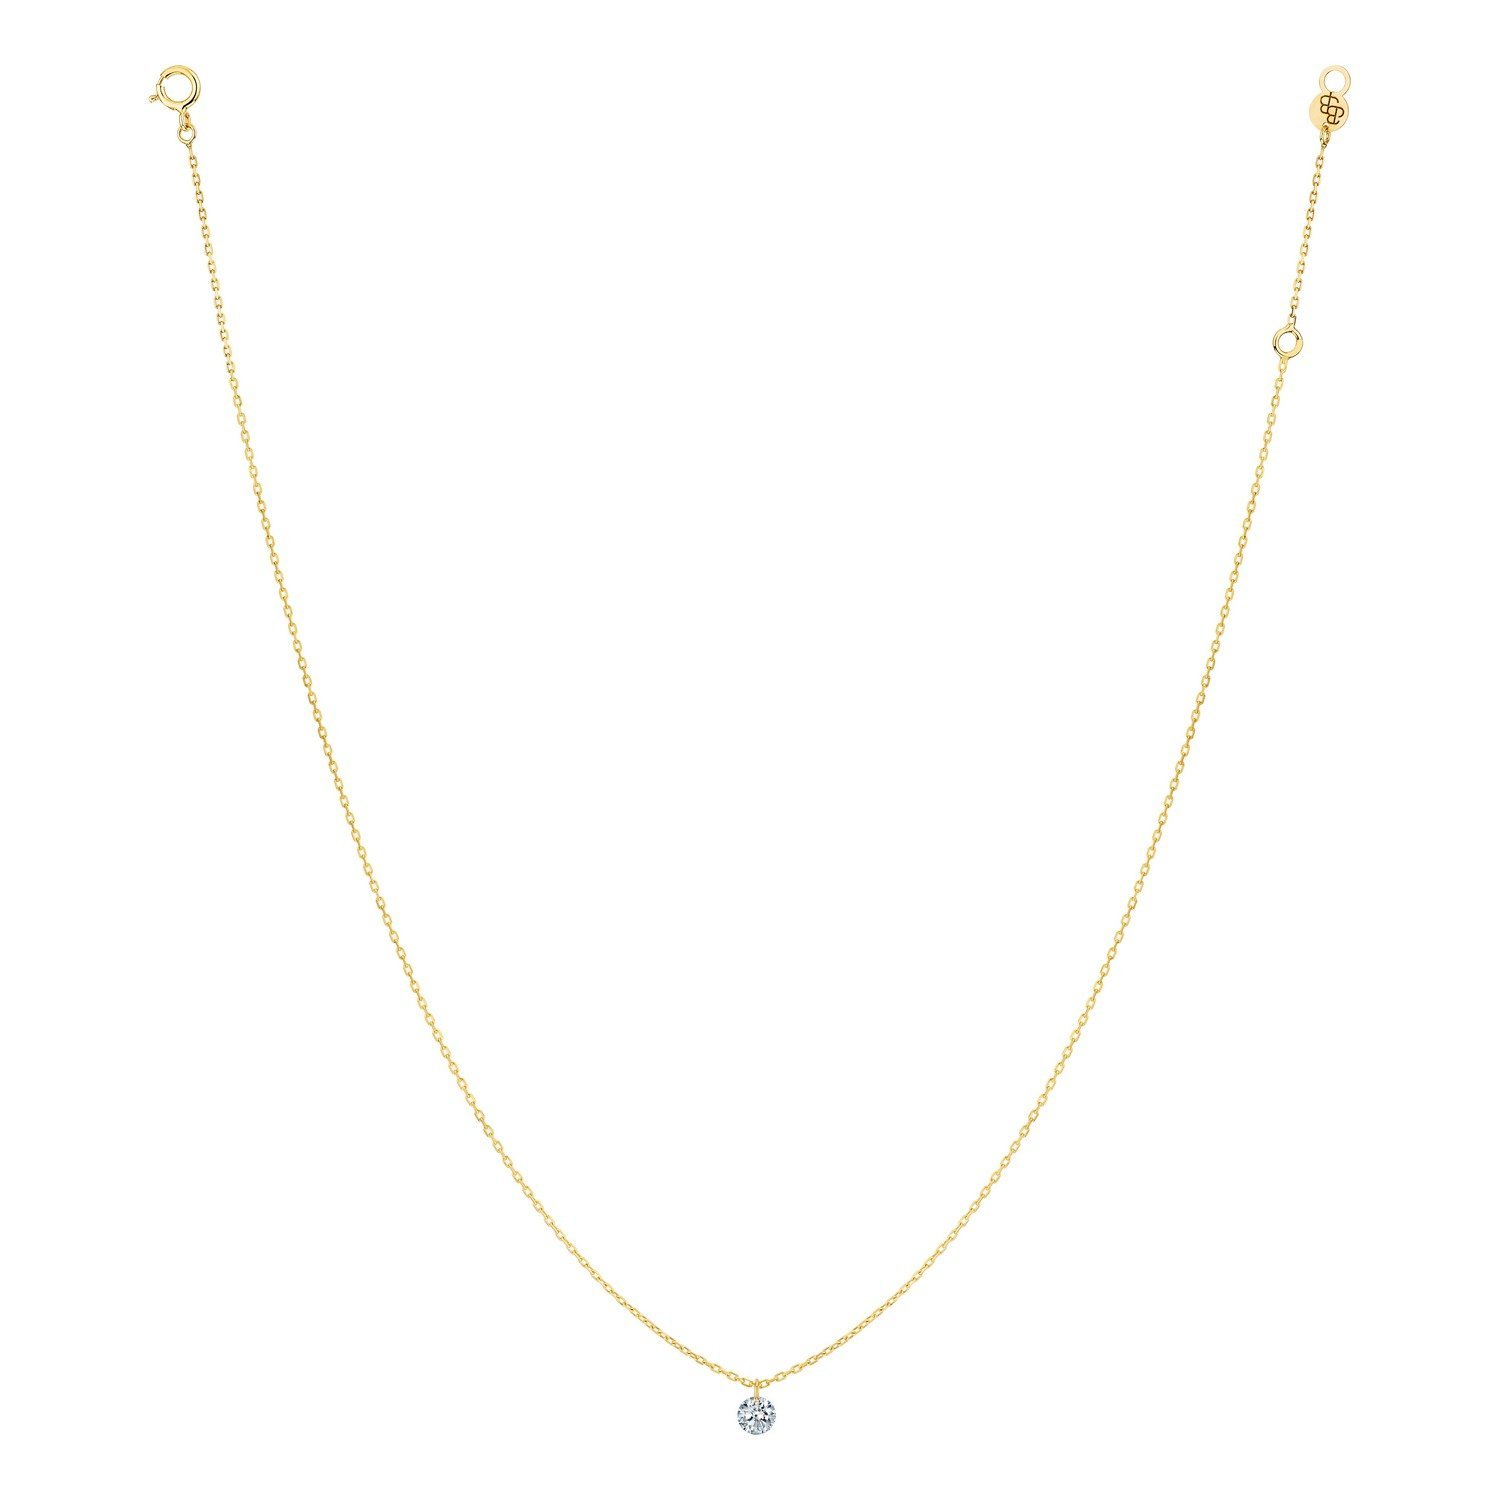 Collier LA BRUNE & LA BLONDE 360° en or jaune et diamant de 0.07ct